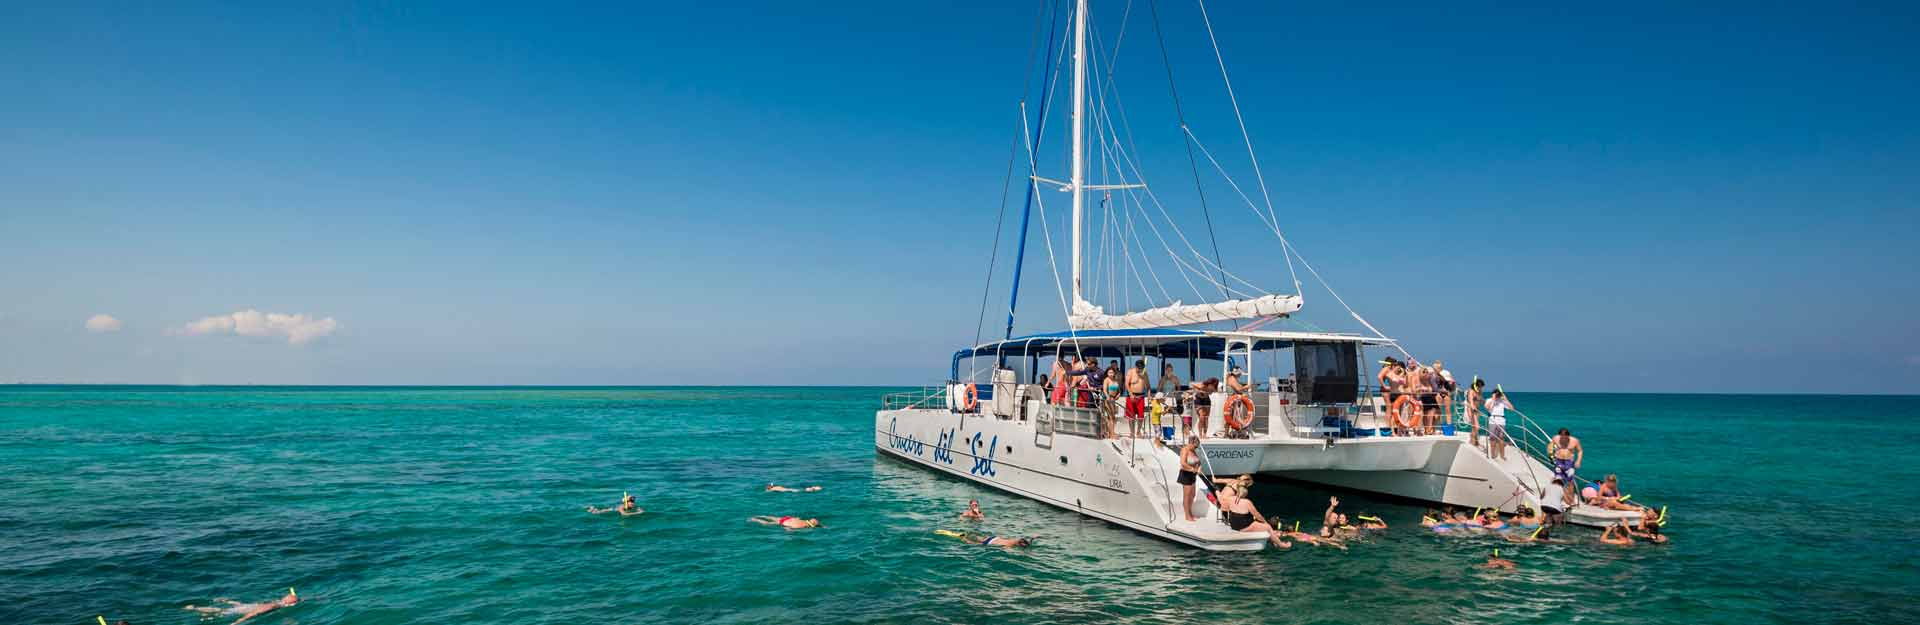 Turismo, Náutica, Excursiones en Catamarán, Cuba Travel